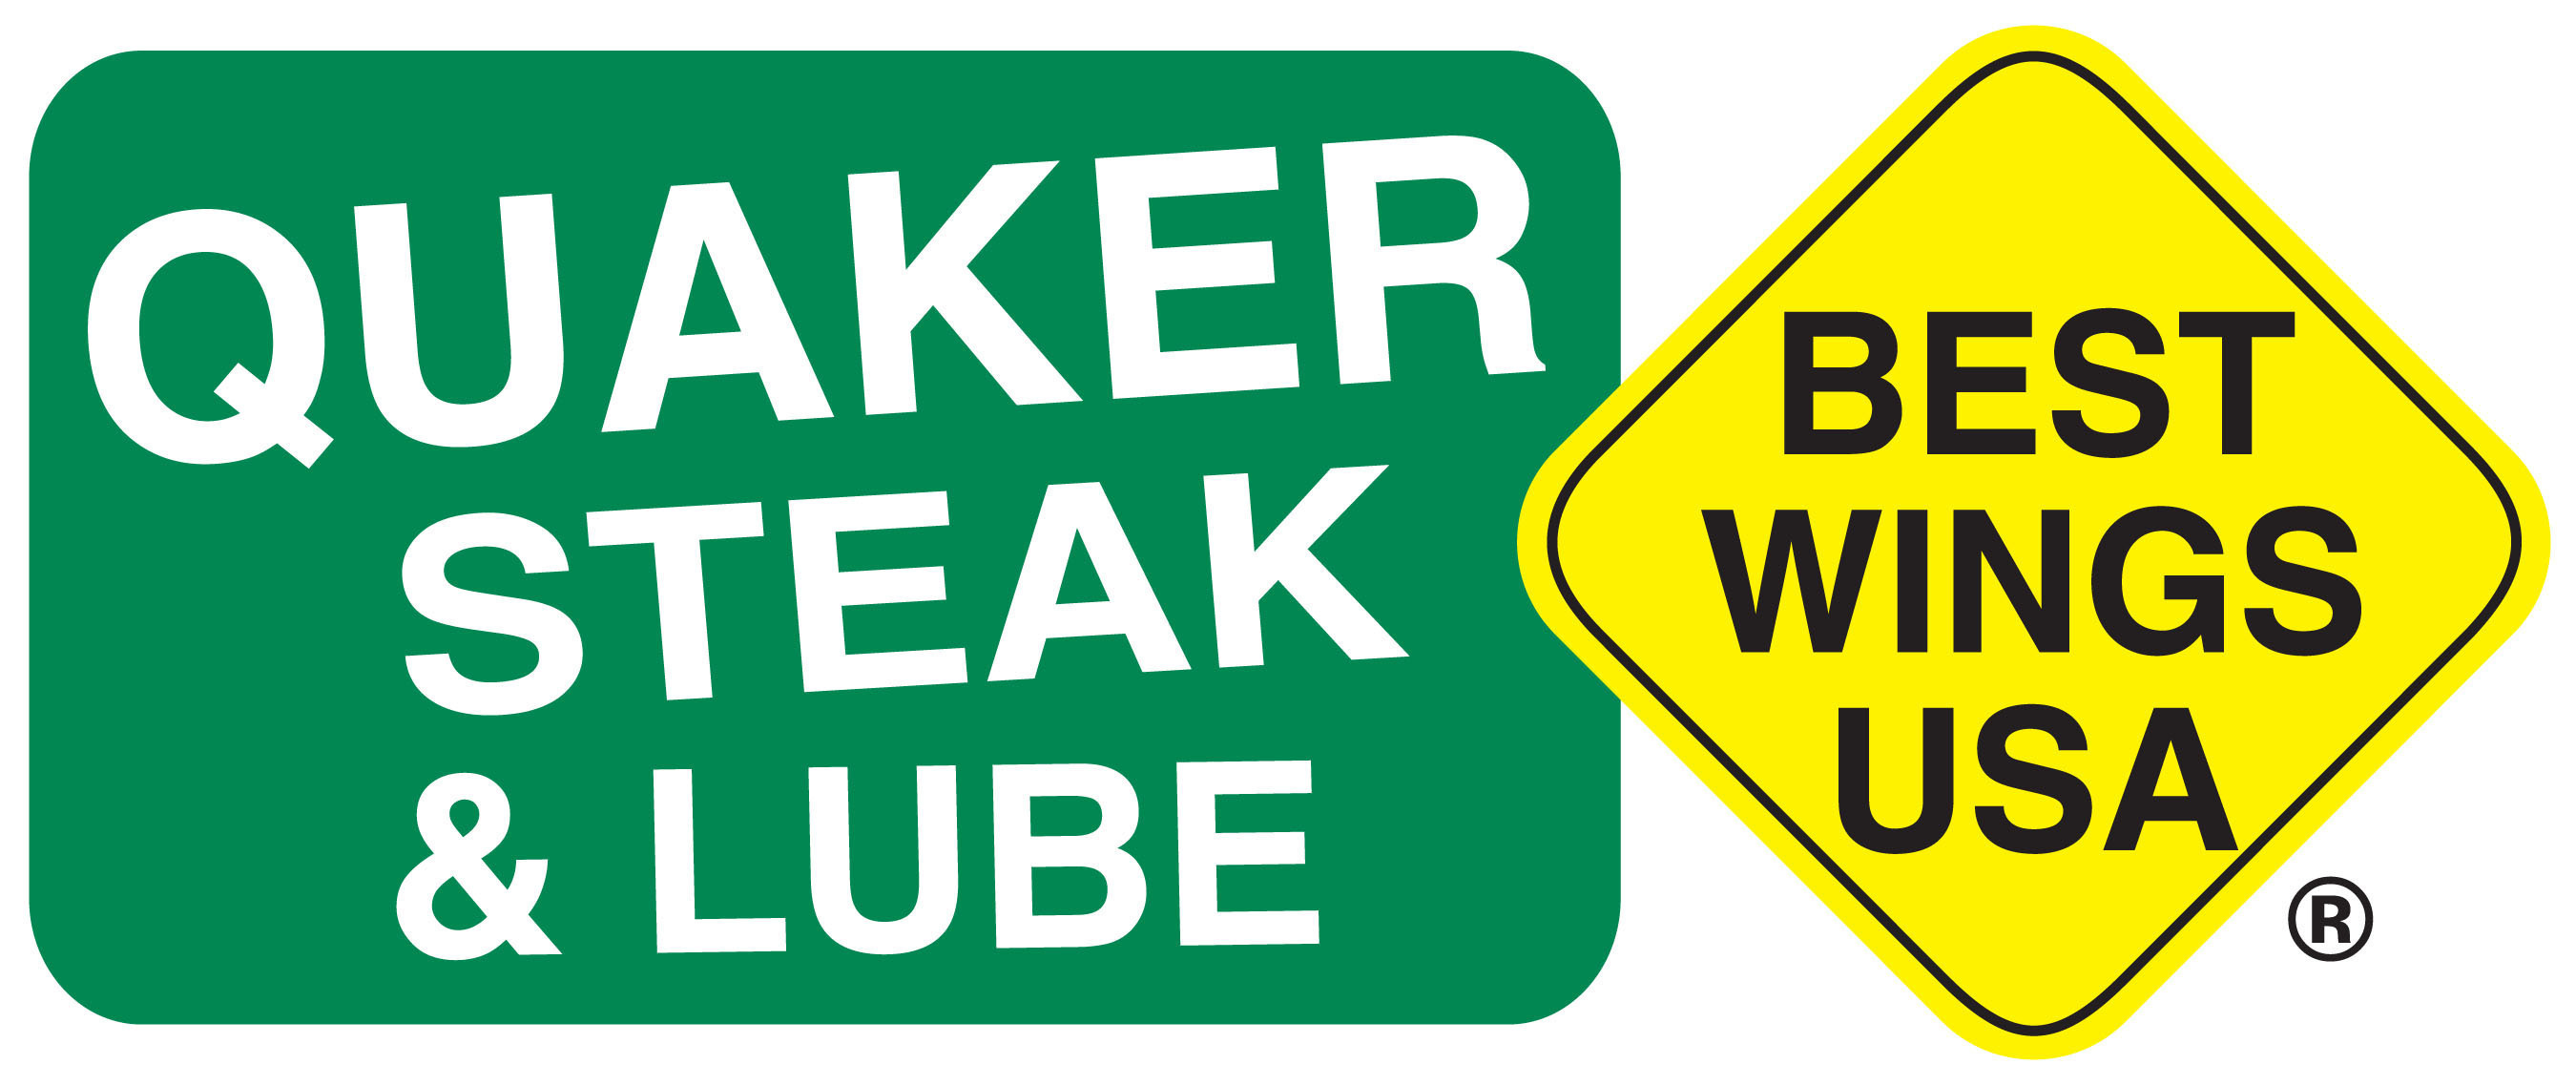 Quaker Steak & Lube company logo